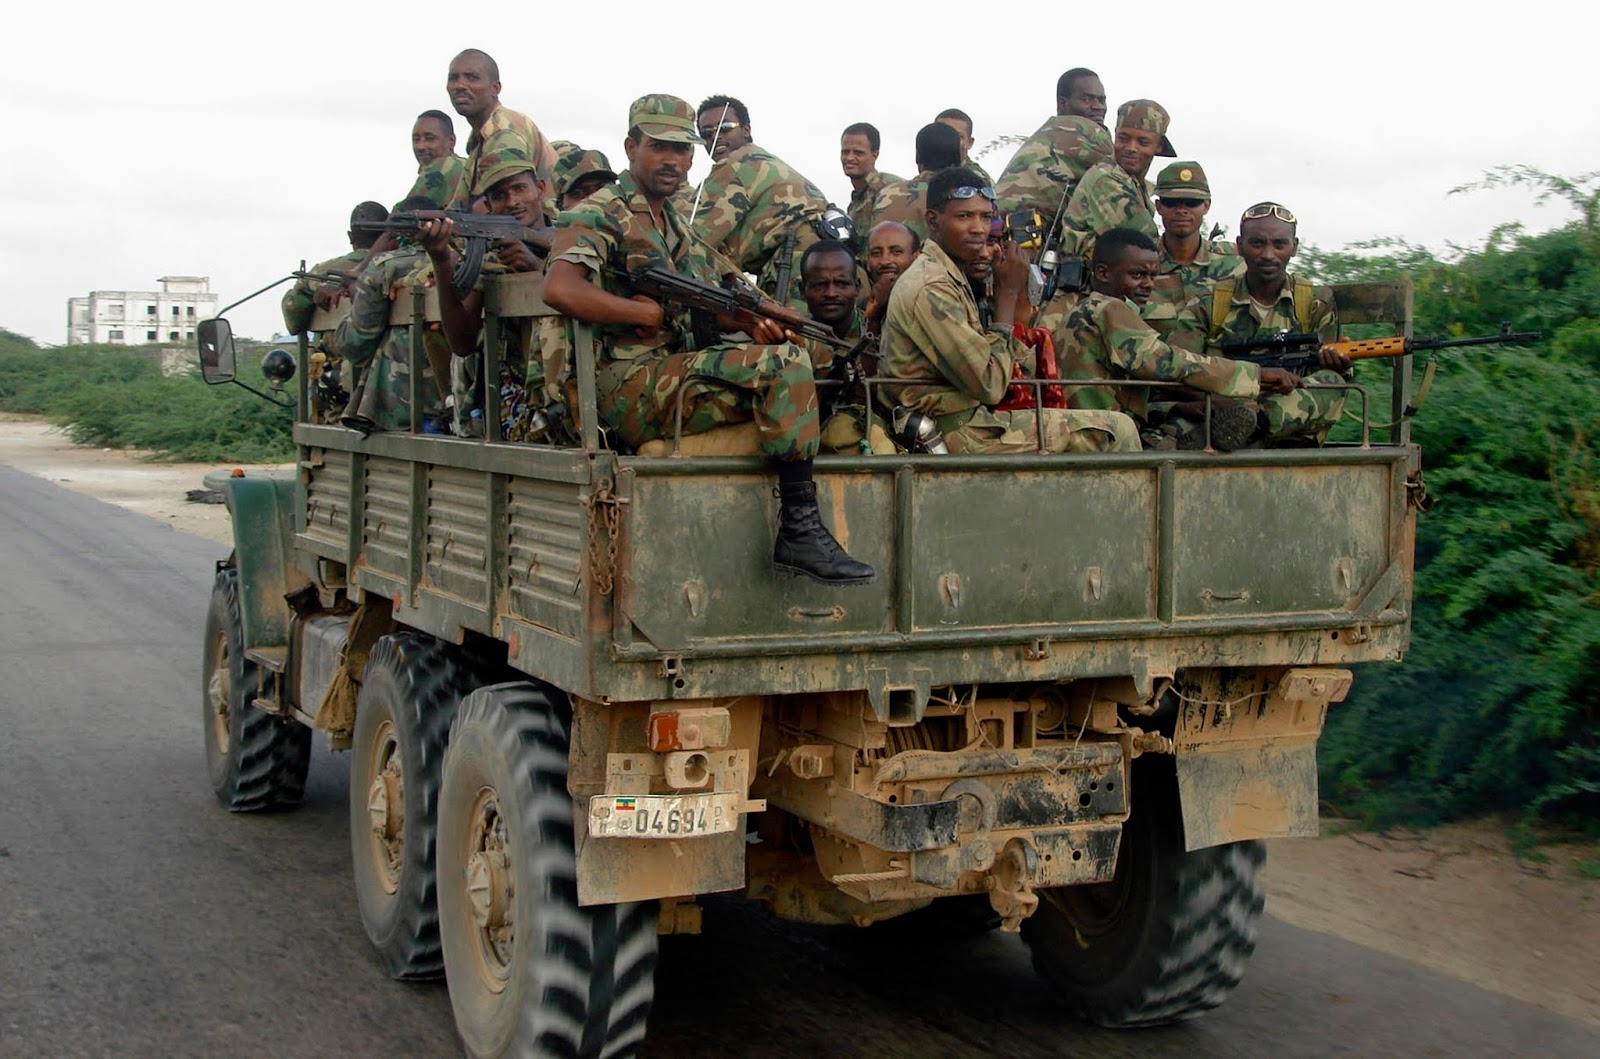 Ethiopia: Govt forces battle OLF soldiers in West Wellega